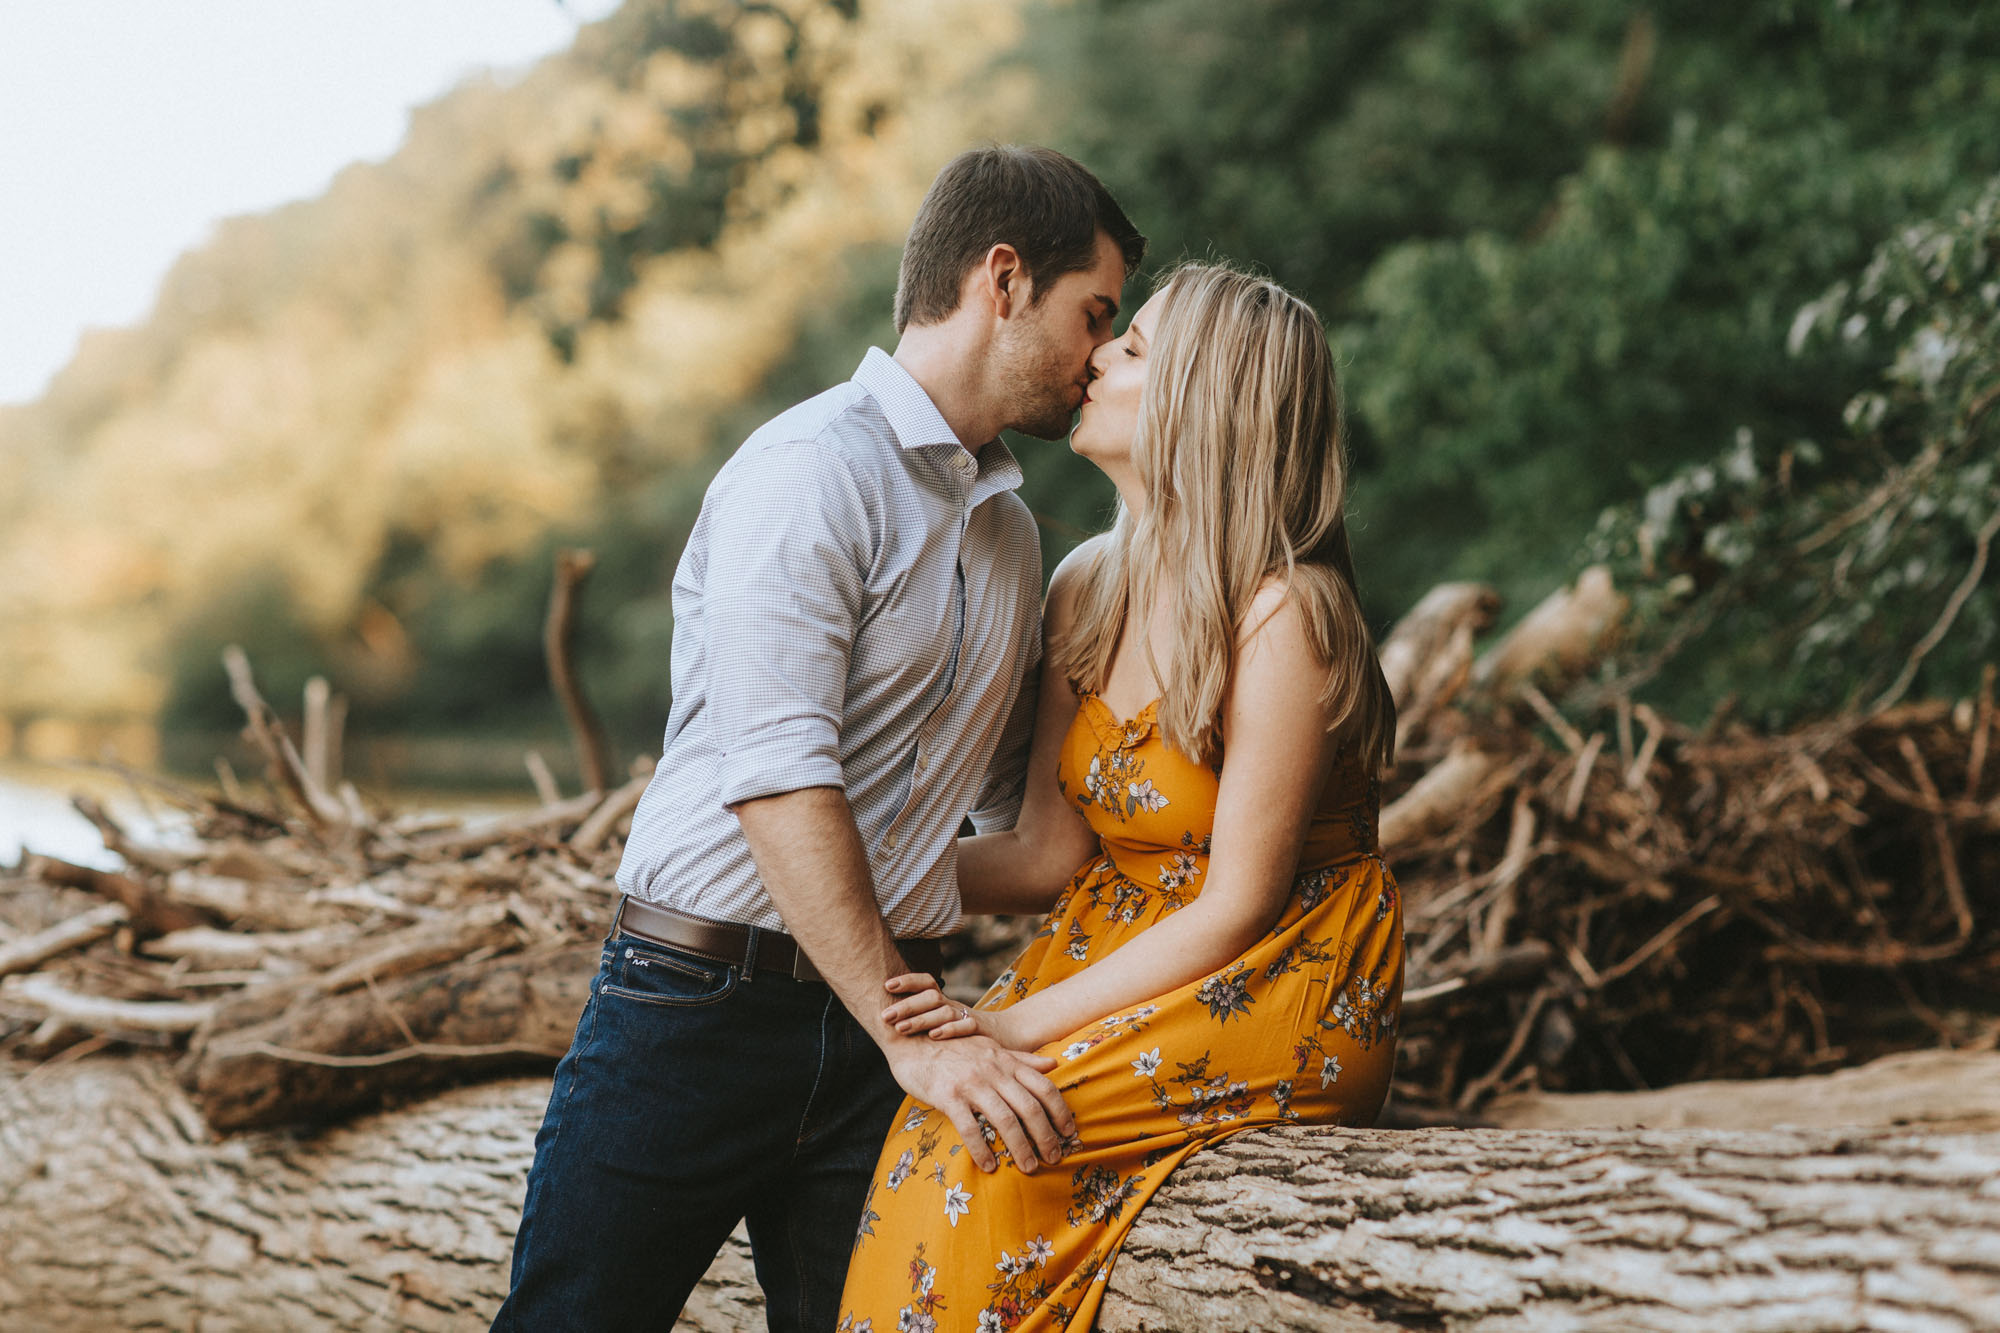 Twisted-Oaks-Jessica-Matt-EngagementI07A3400.jpg